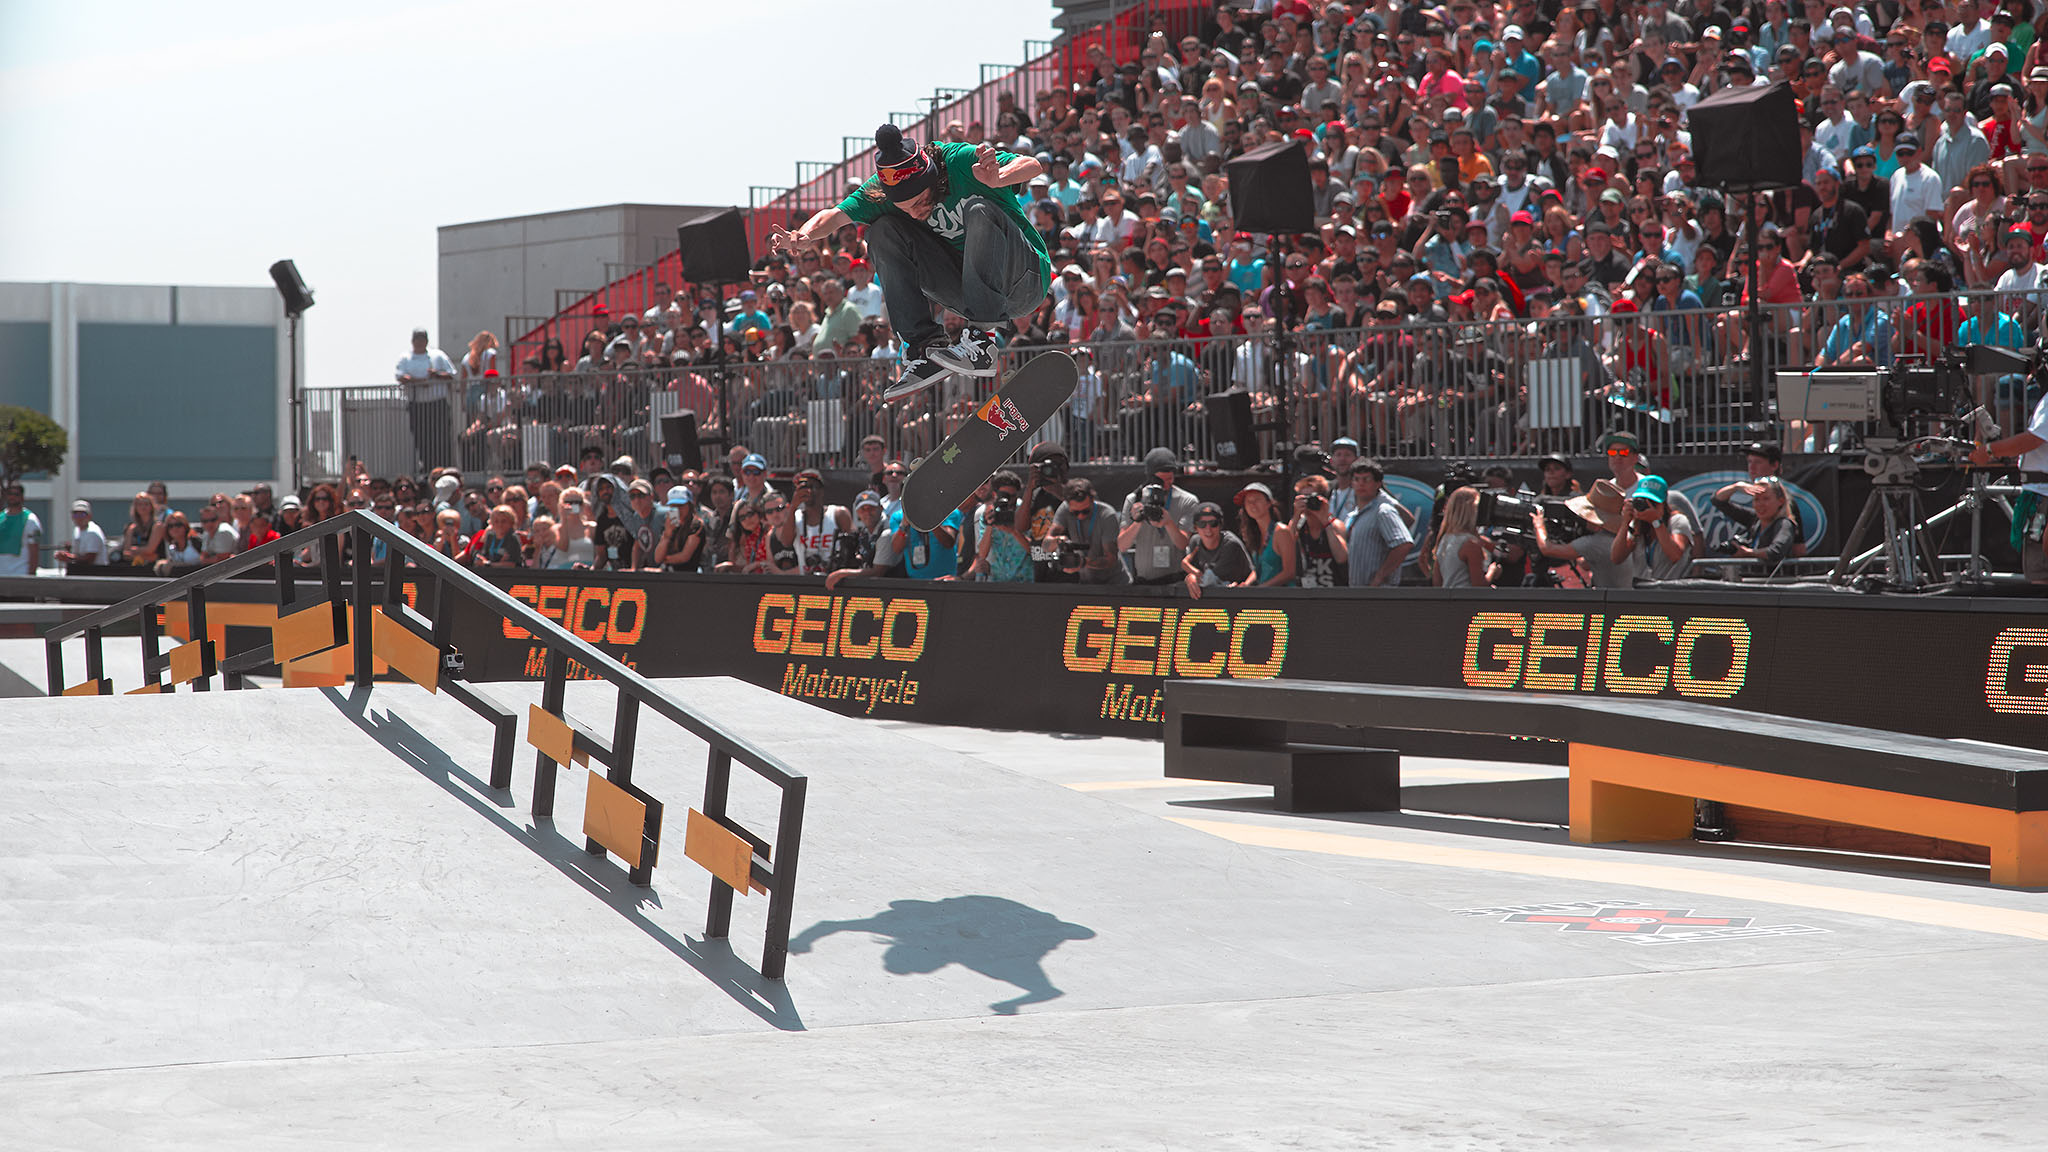 This photo of Torey Pudwill was taken after it was clear he would not make the Street League at X Games final. There was a trick he was determined to make, however, and the crowd was on its feet when he finally nailed it and rolled away.